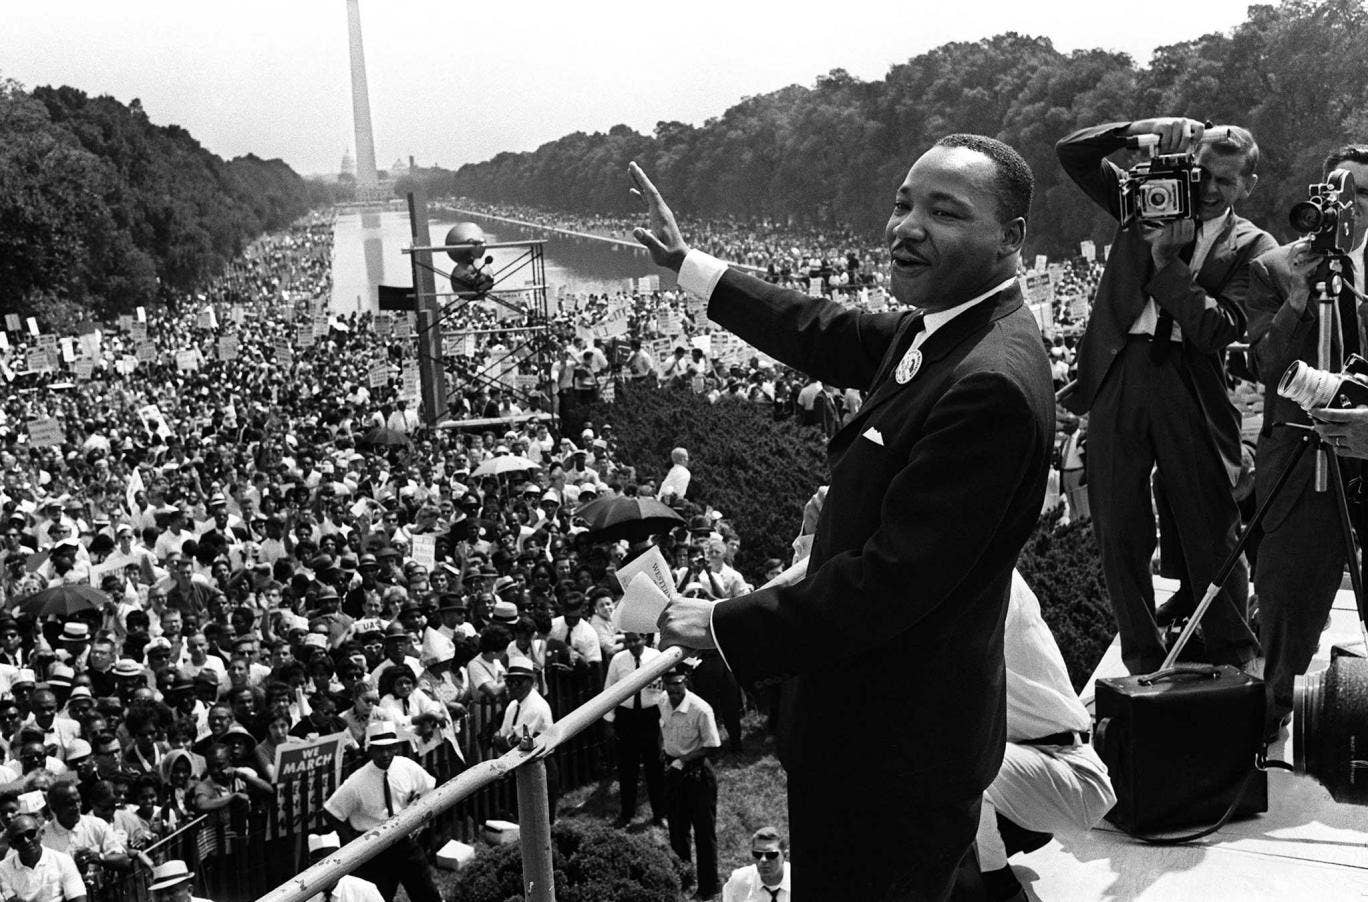 Memories of a March and a Dream: Martin Luther King during the March on Washington, on 28 August 1963